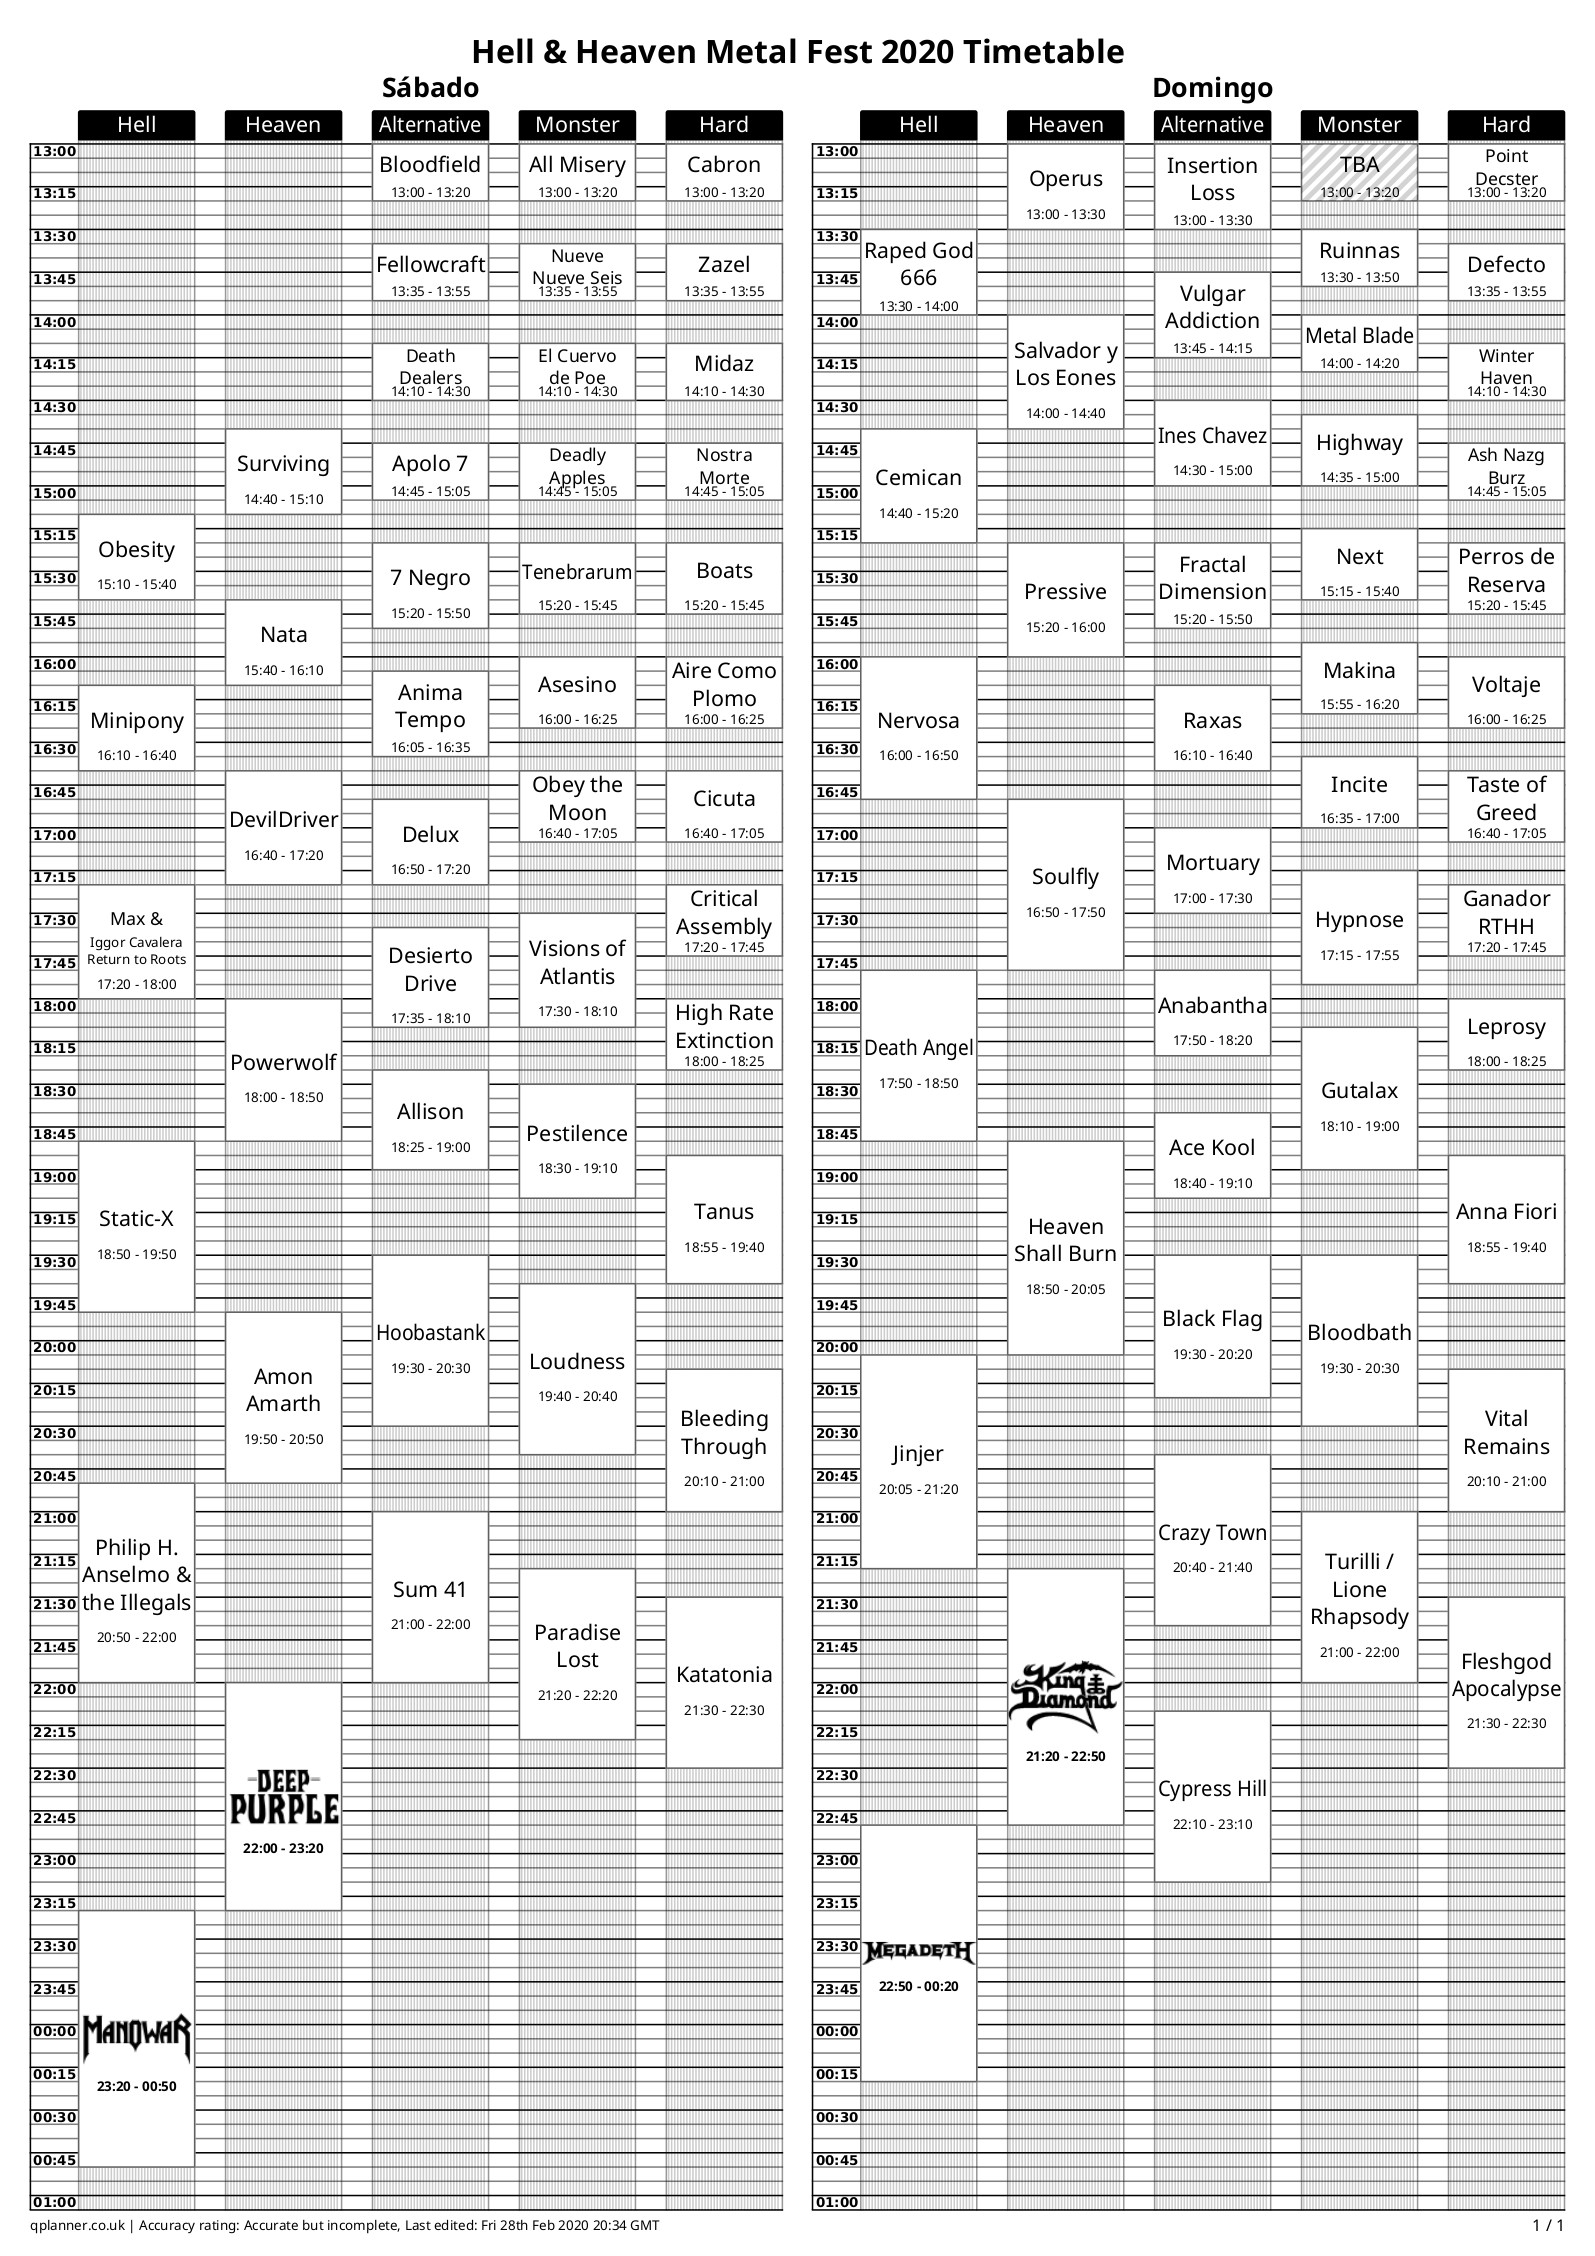 horarios hell and heaven 2020